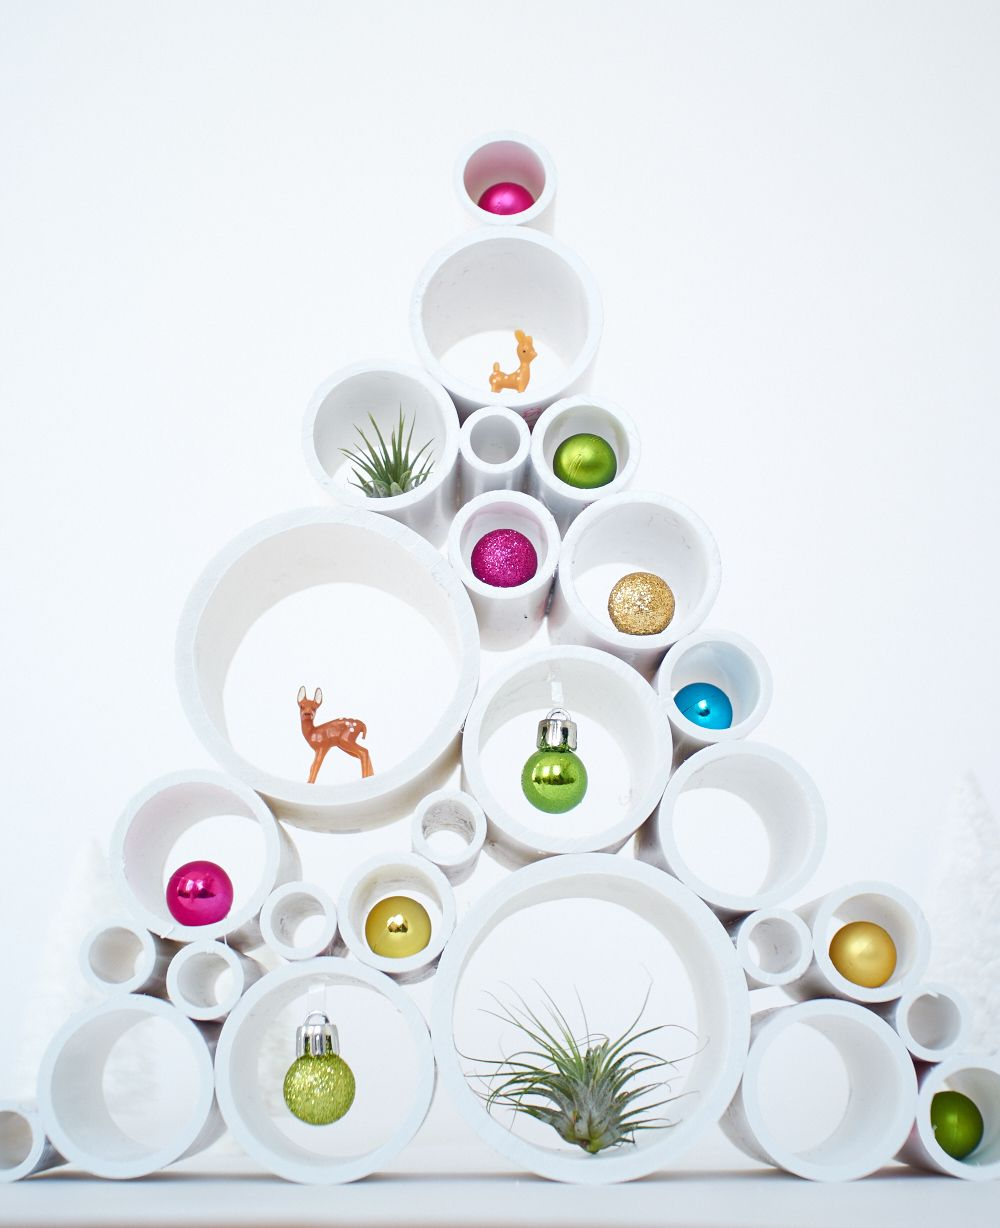 69537ff9b62a How To: Make a PVC Pipe Small-Scale Christmas Tree | DIY Holiday ...